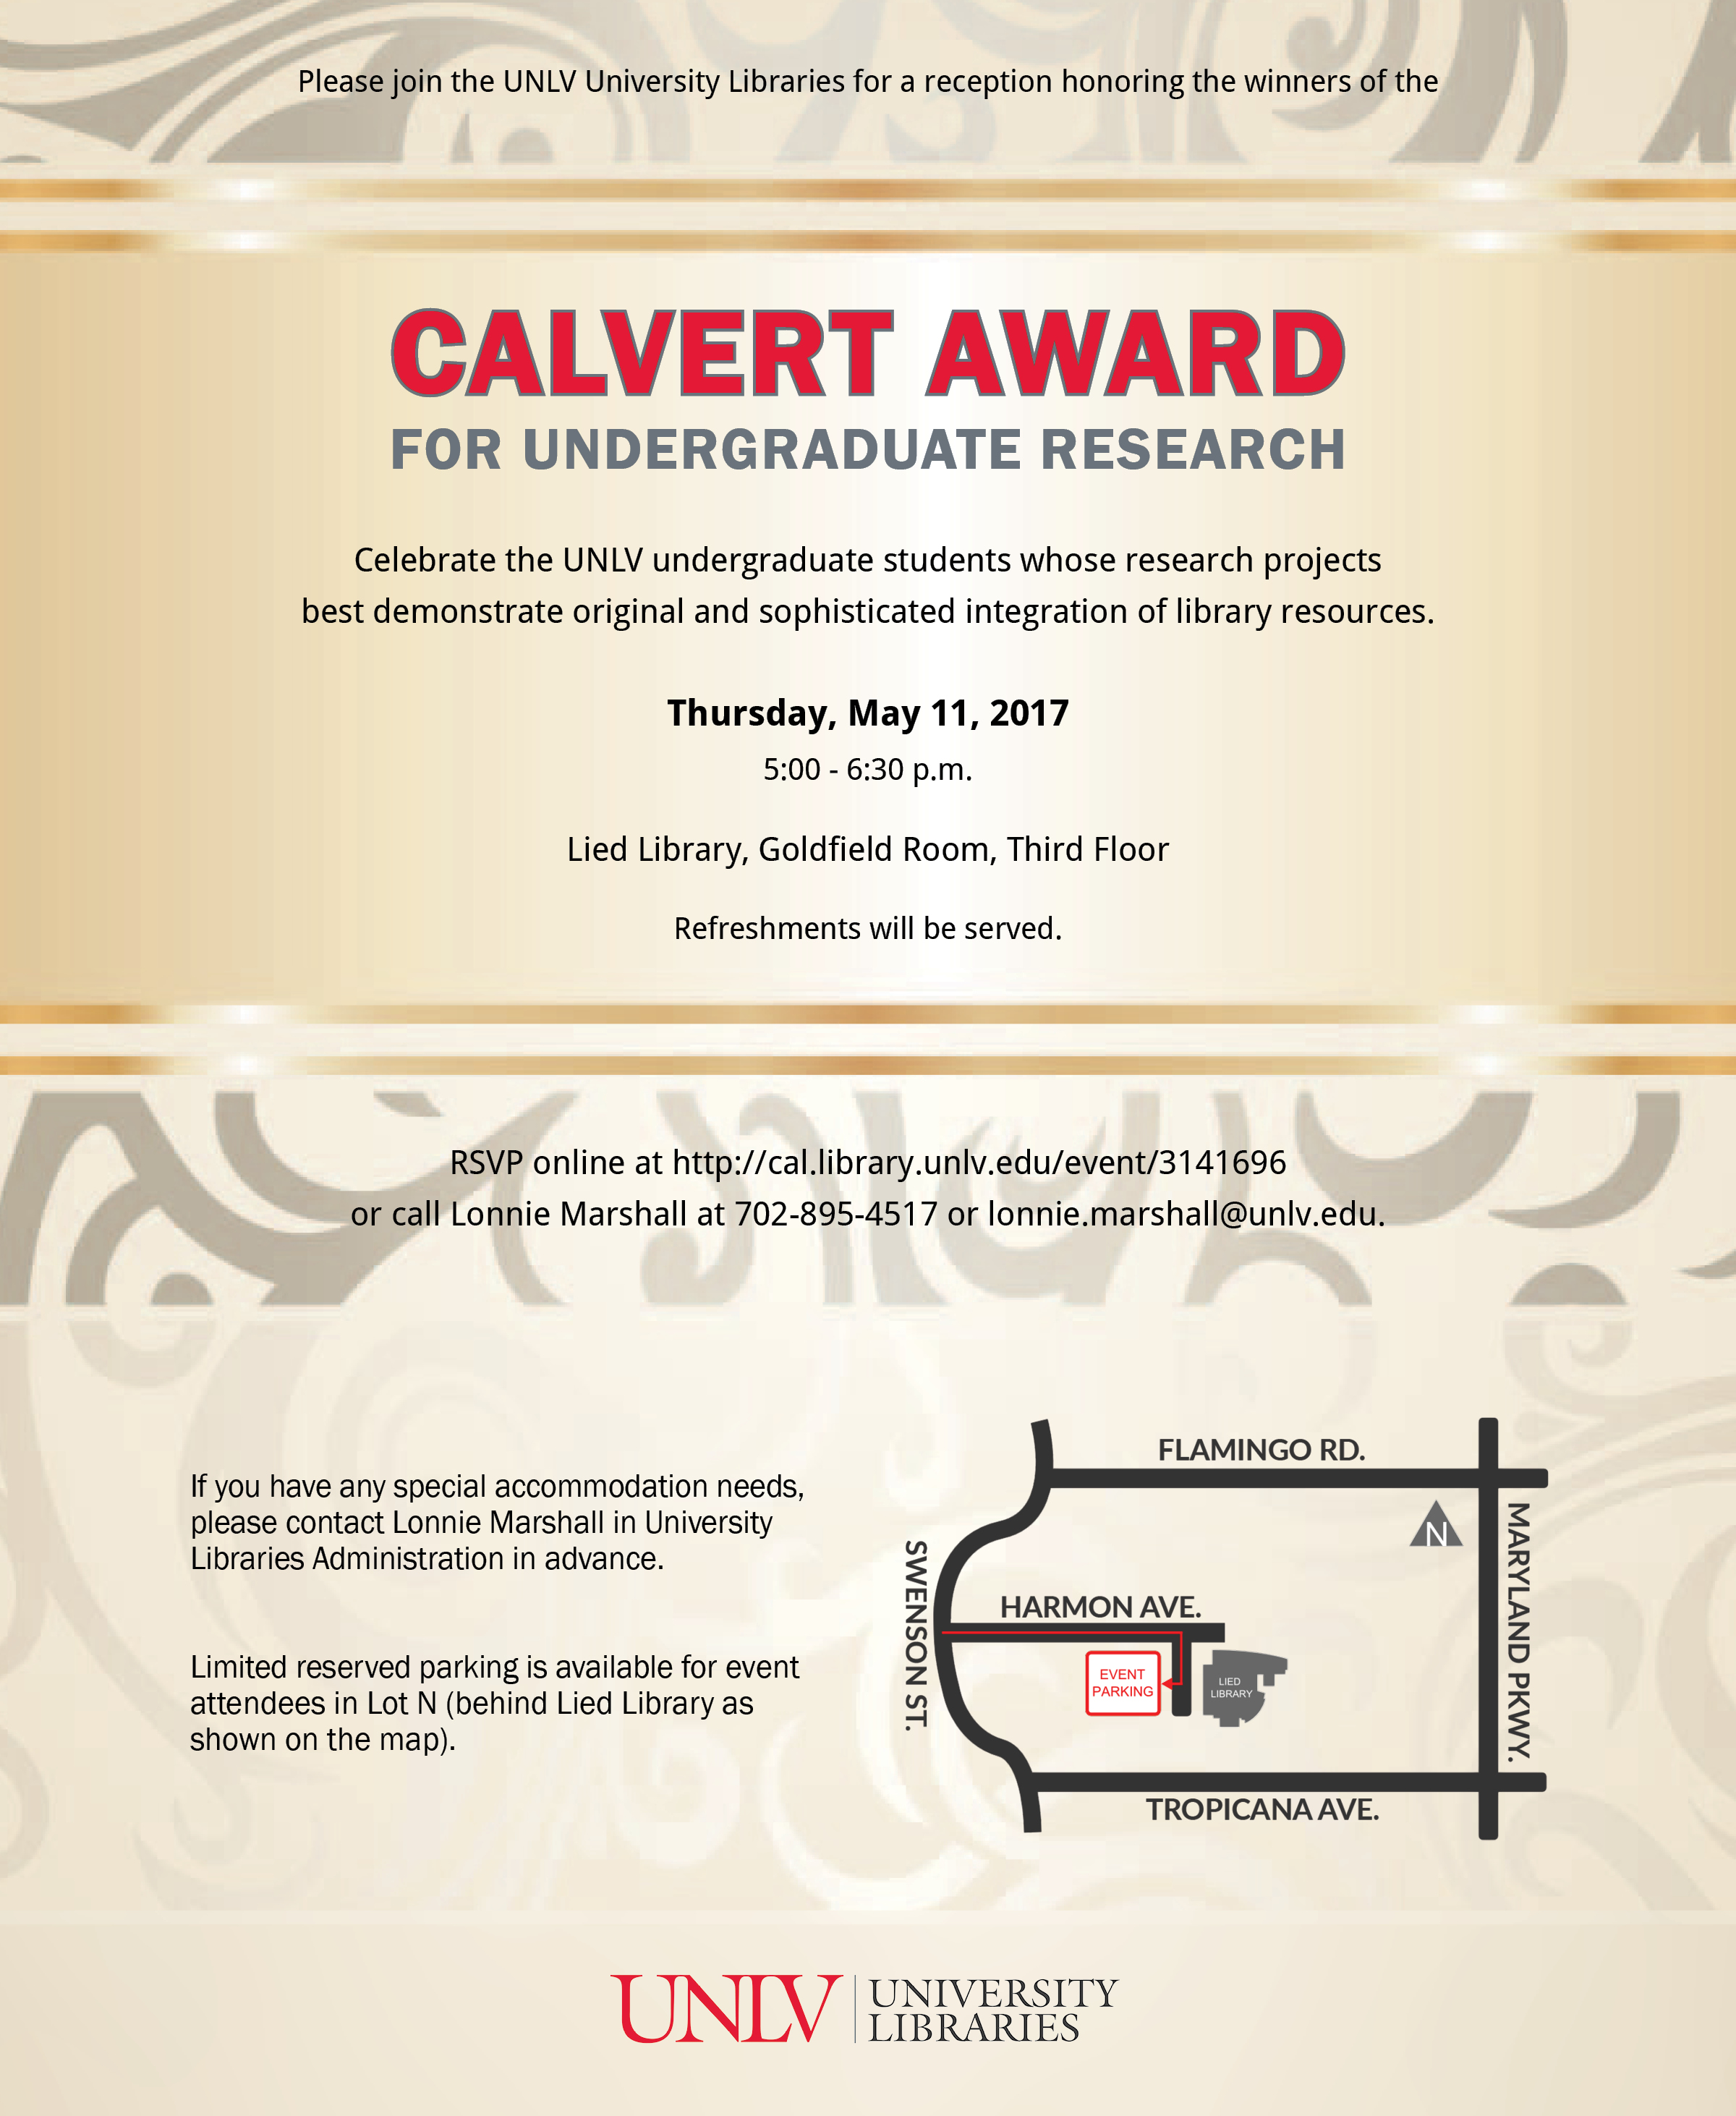 2017 Calvert Award for Undergraduate Research